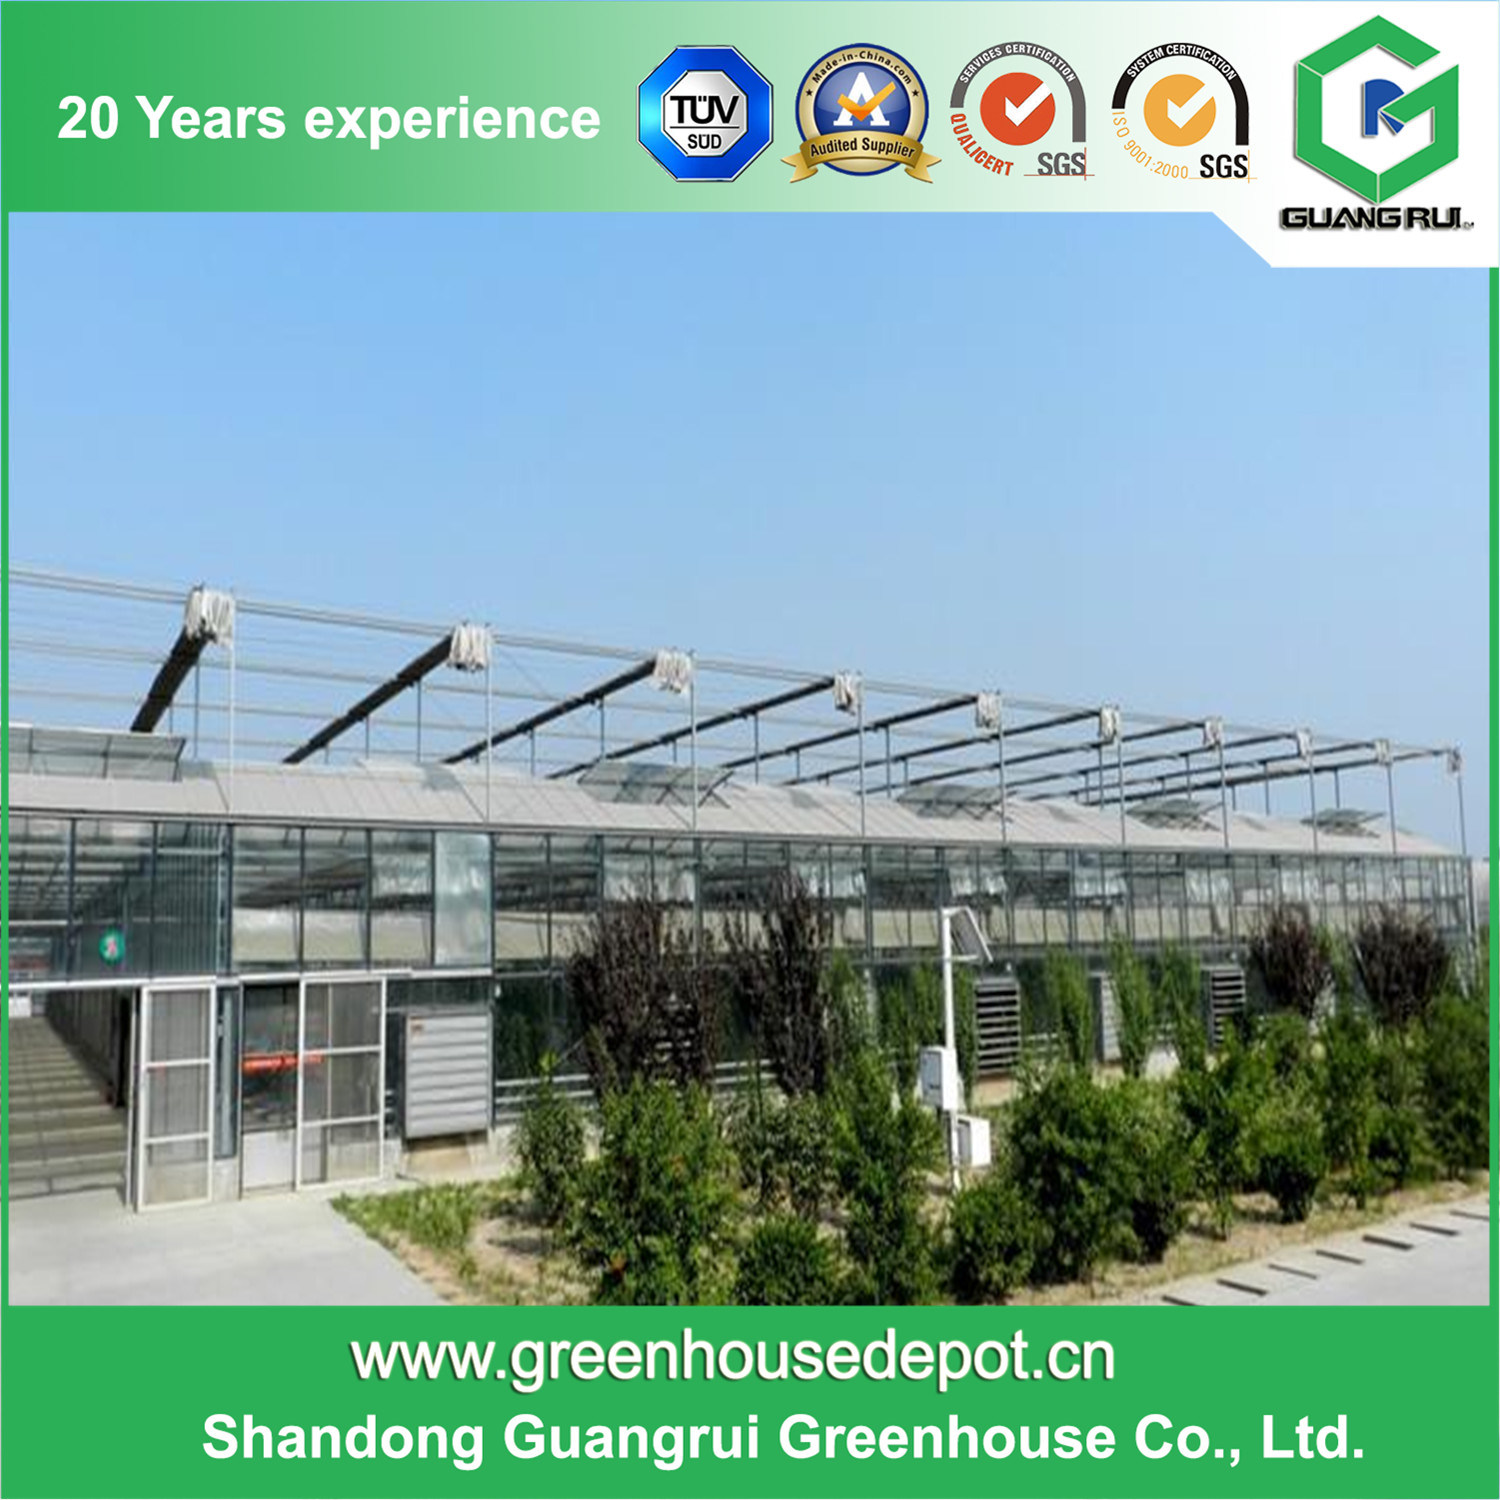 Garden / Commercial Greenhouses and Hydroponic Growing Kits